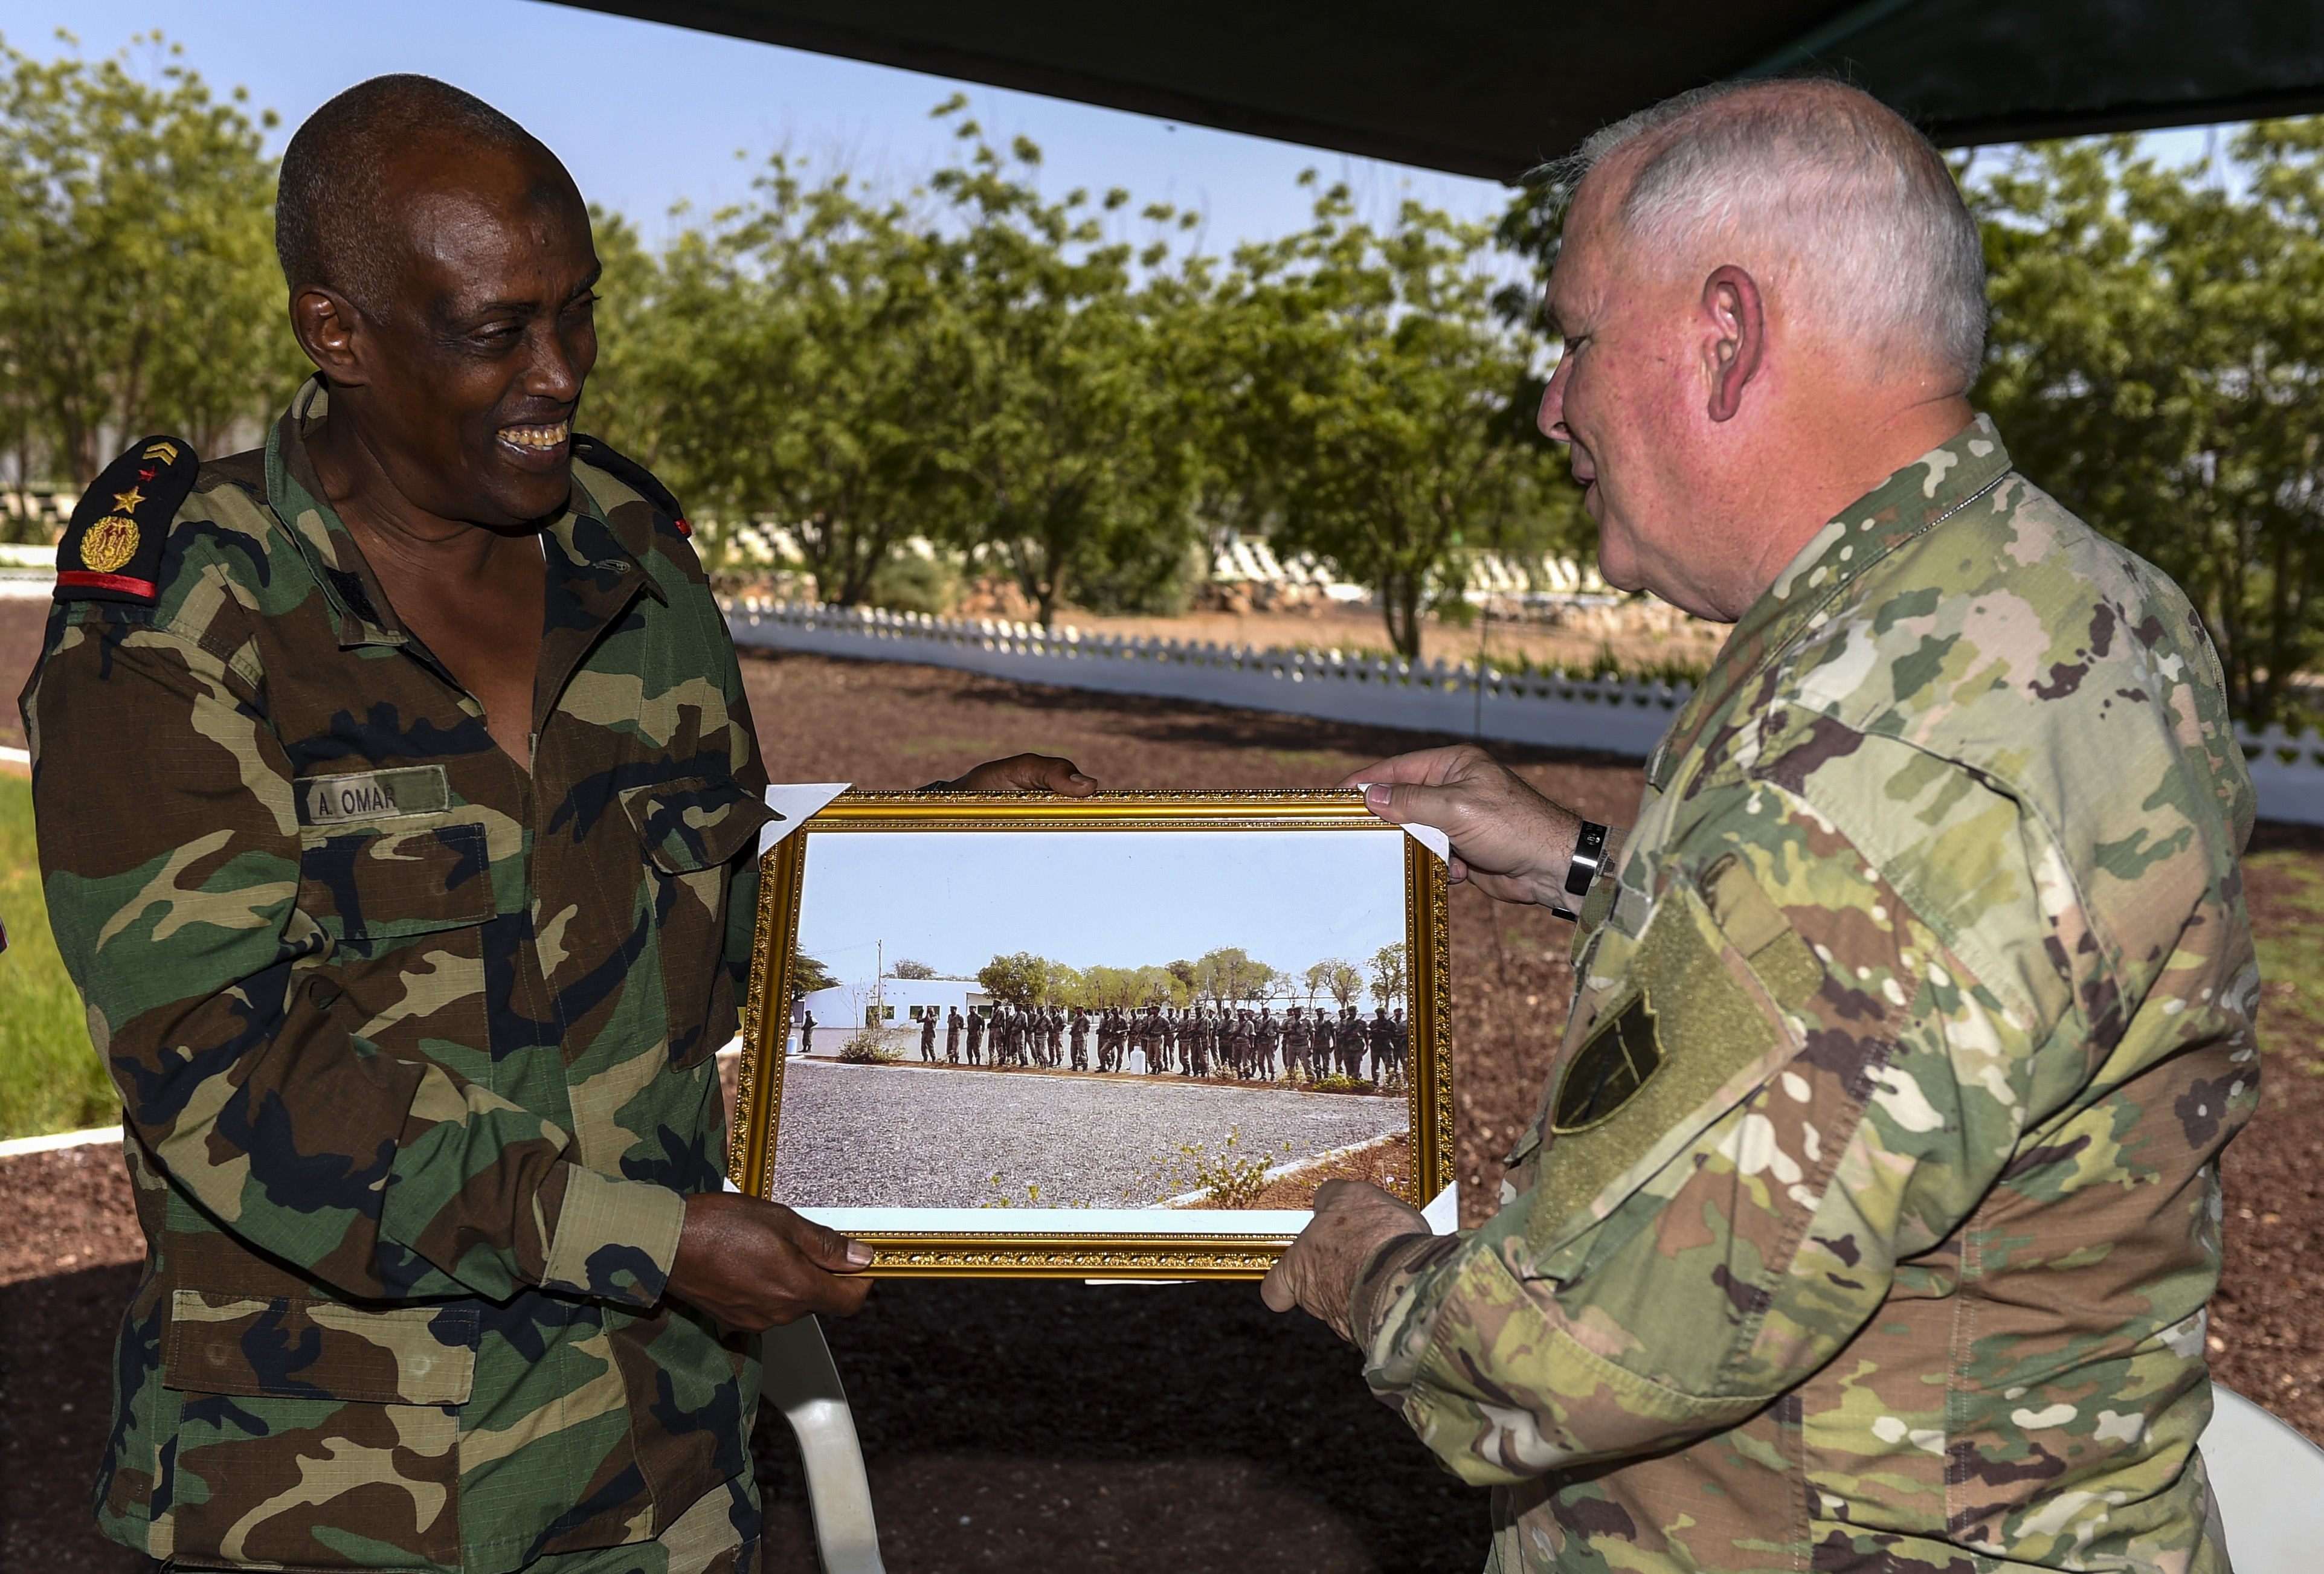 Djibouti Armed Forces (FAD) Lt. Col. A. Omar (left) presents a gift to U.S. Army National Guard Brig. Gen. Benjamin Adams III, Kentucky National Guard deputy adjutant general, during a State Partnership Program visit to the FAD military training center at Holhol, Djibouti, Nov. 14, 2017. The SPP is a joint U.S. Department of Defense program that matches a state's National Guard with a1 nation to promote enduring, mutually beneficial security relationships. (U.S. Air Force photo by Staff Sgt. Timothy Moore)